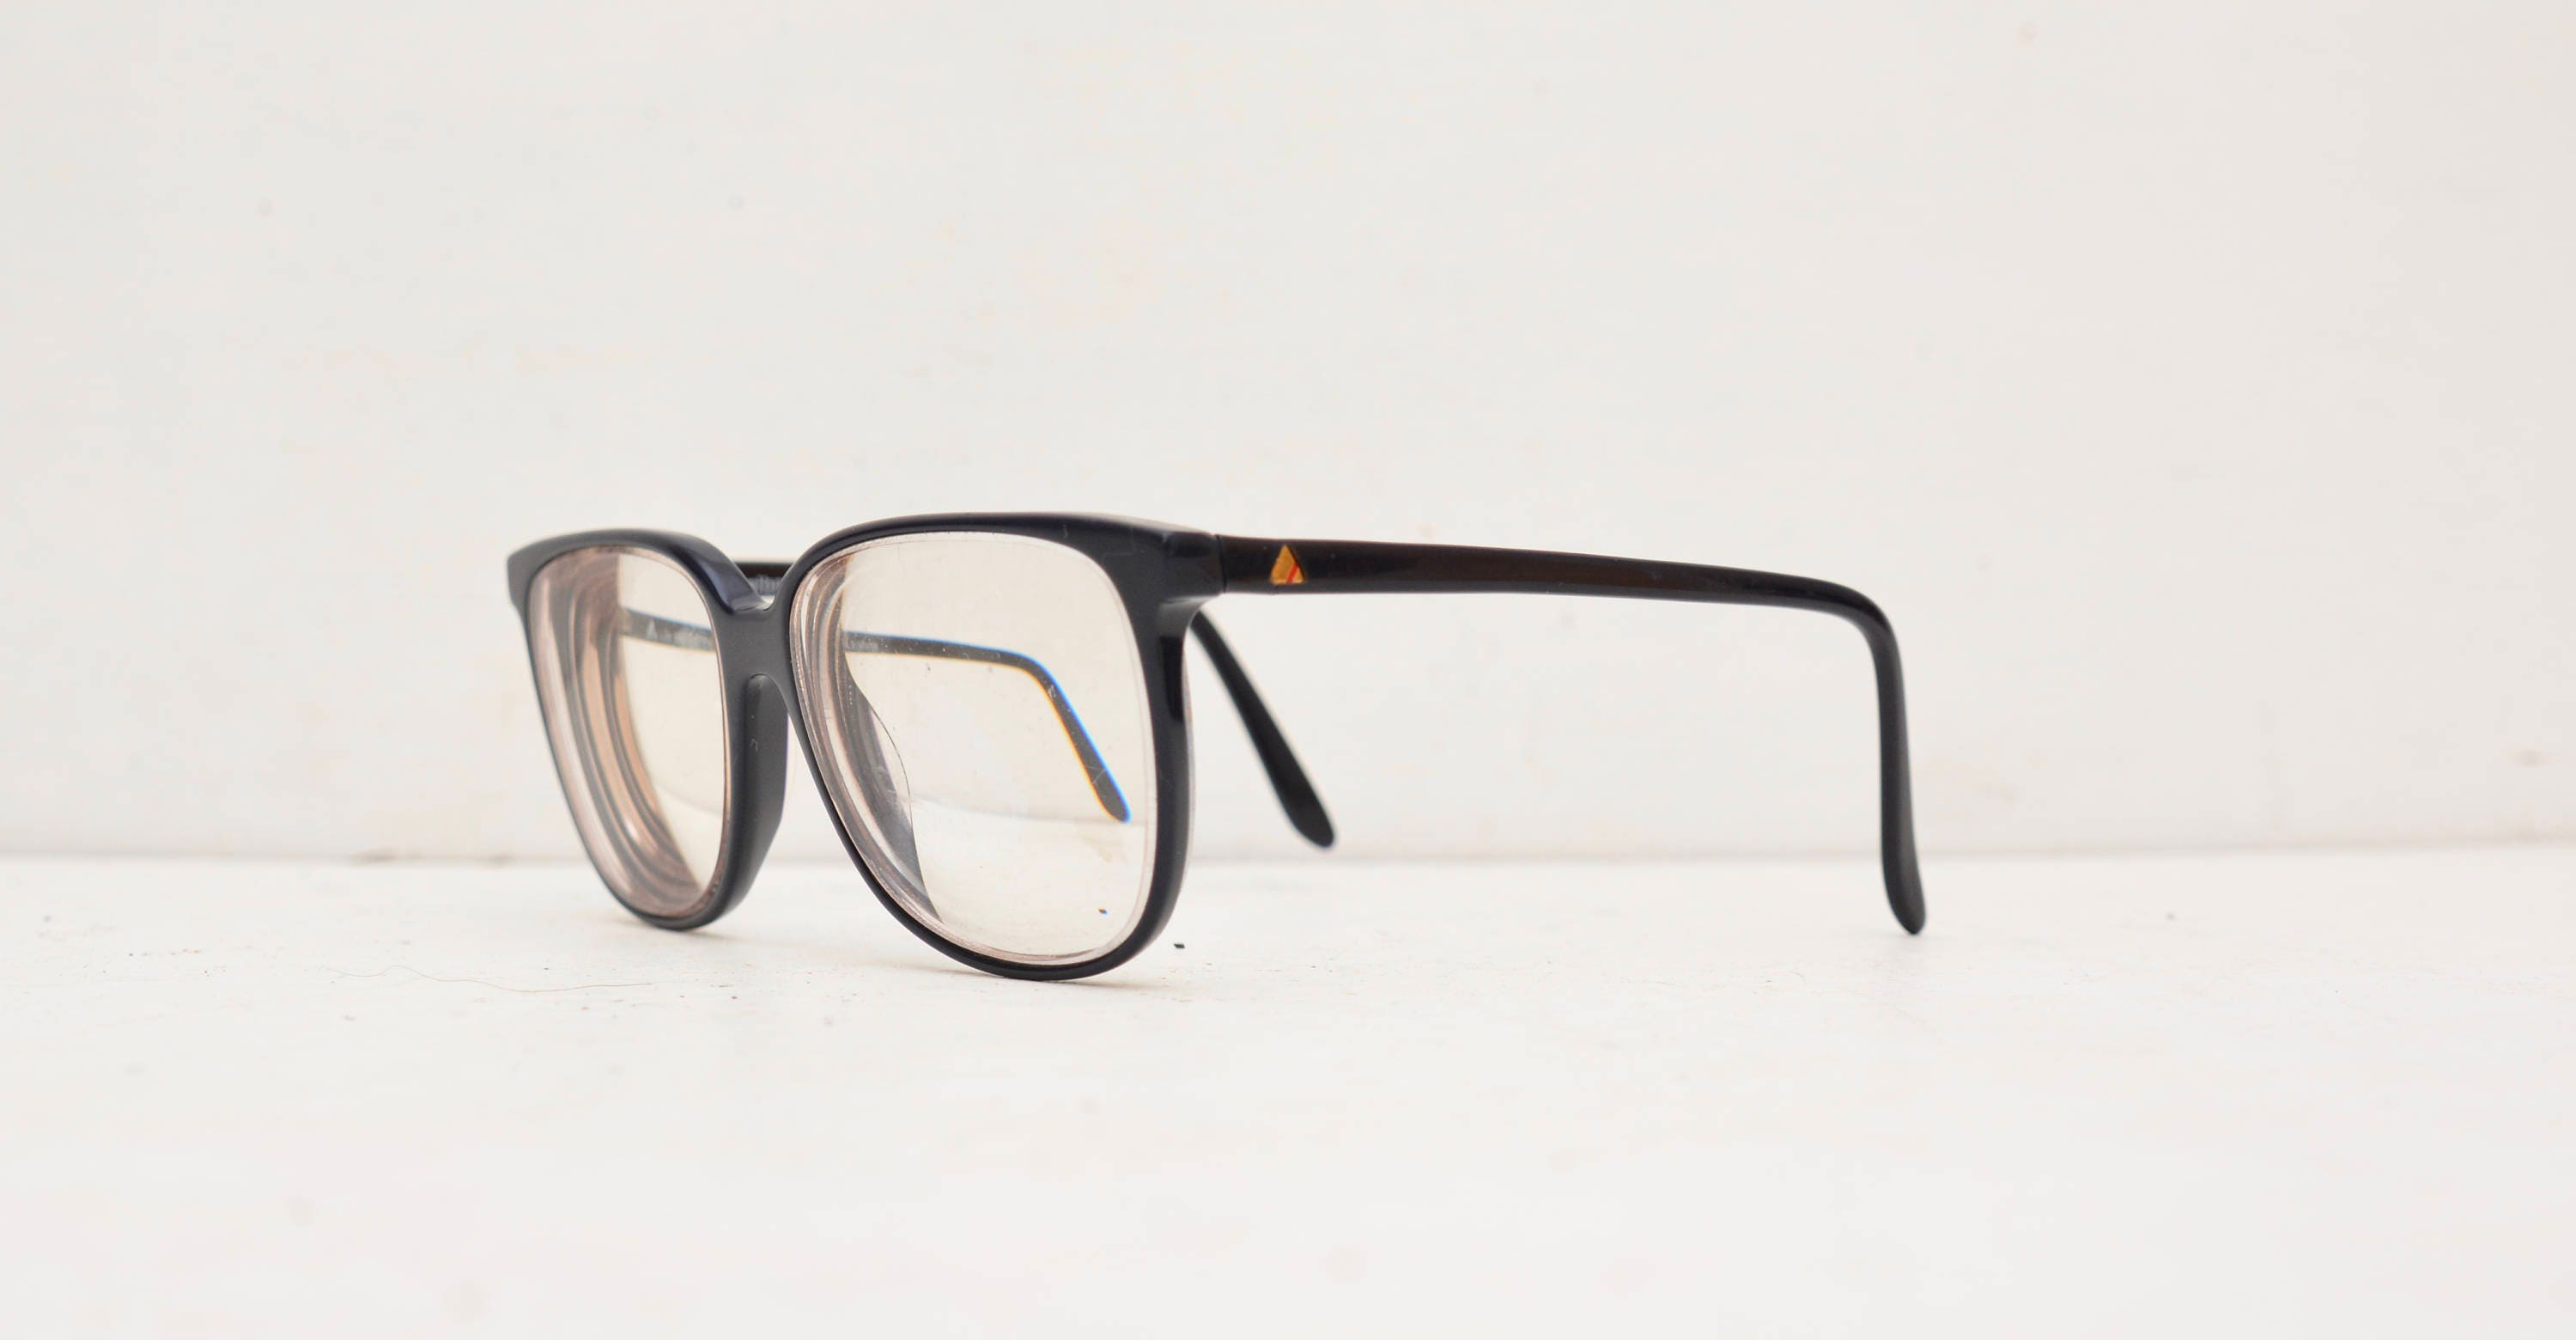 Liz Claiborne Eyeglasses LC 12 Navy Blue NA 135 Nerd Oversized Big ...